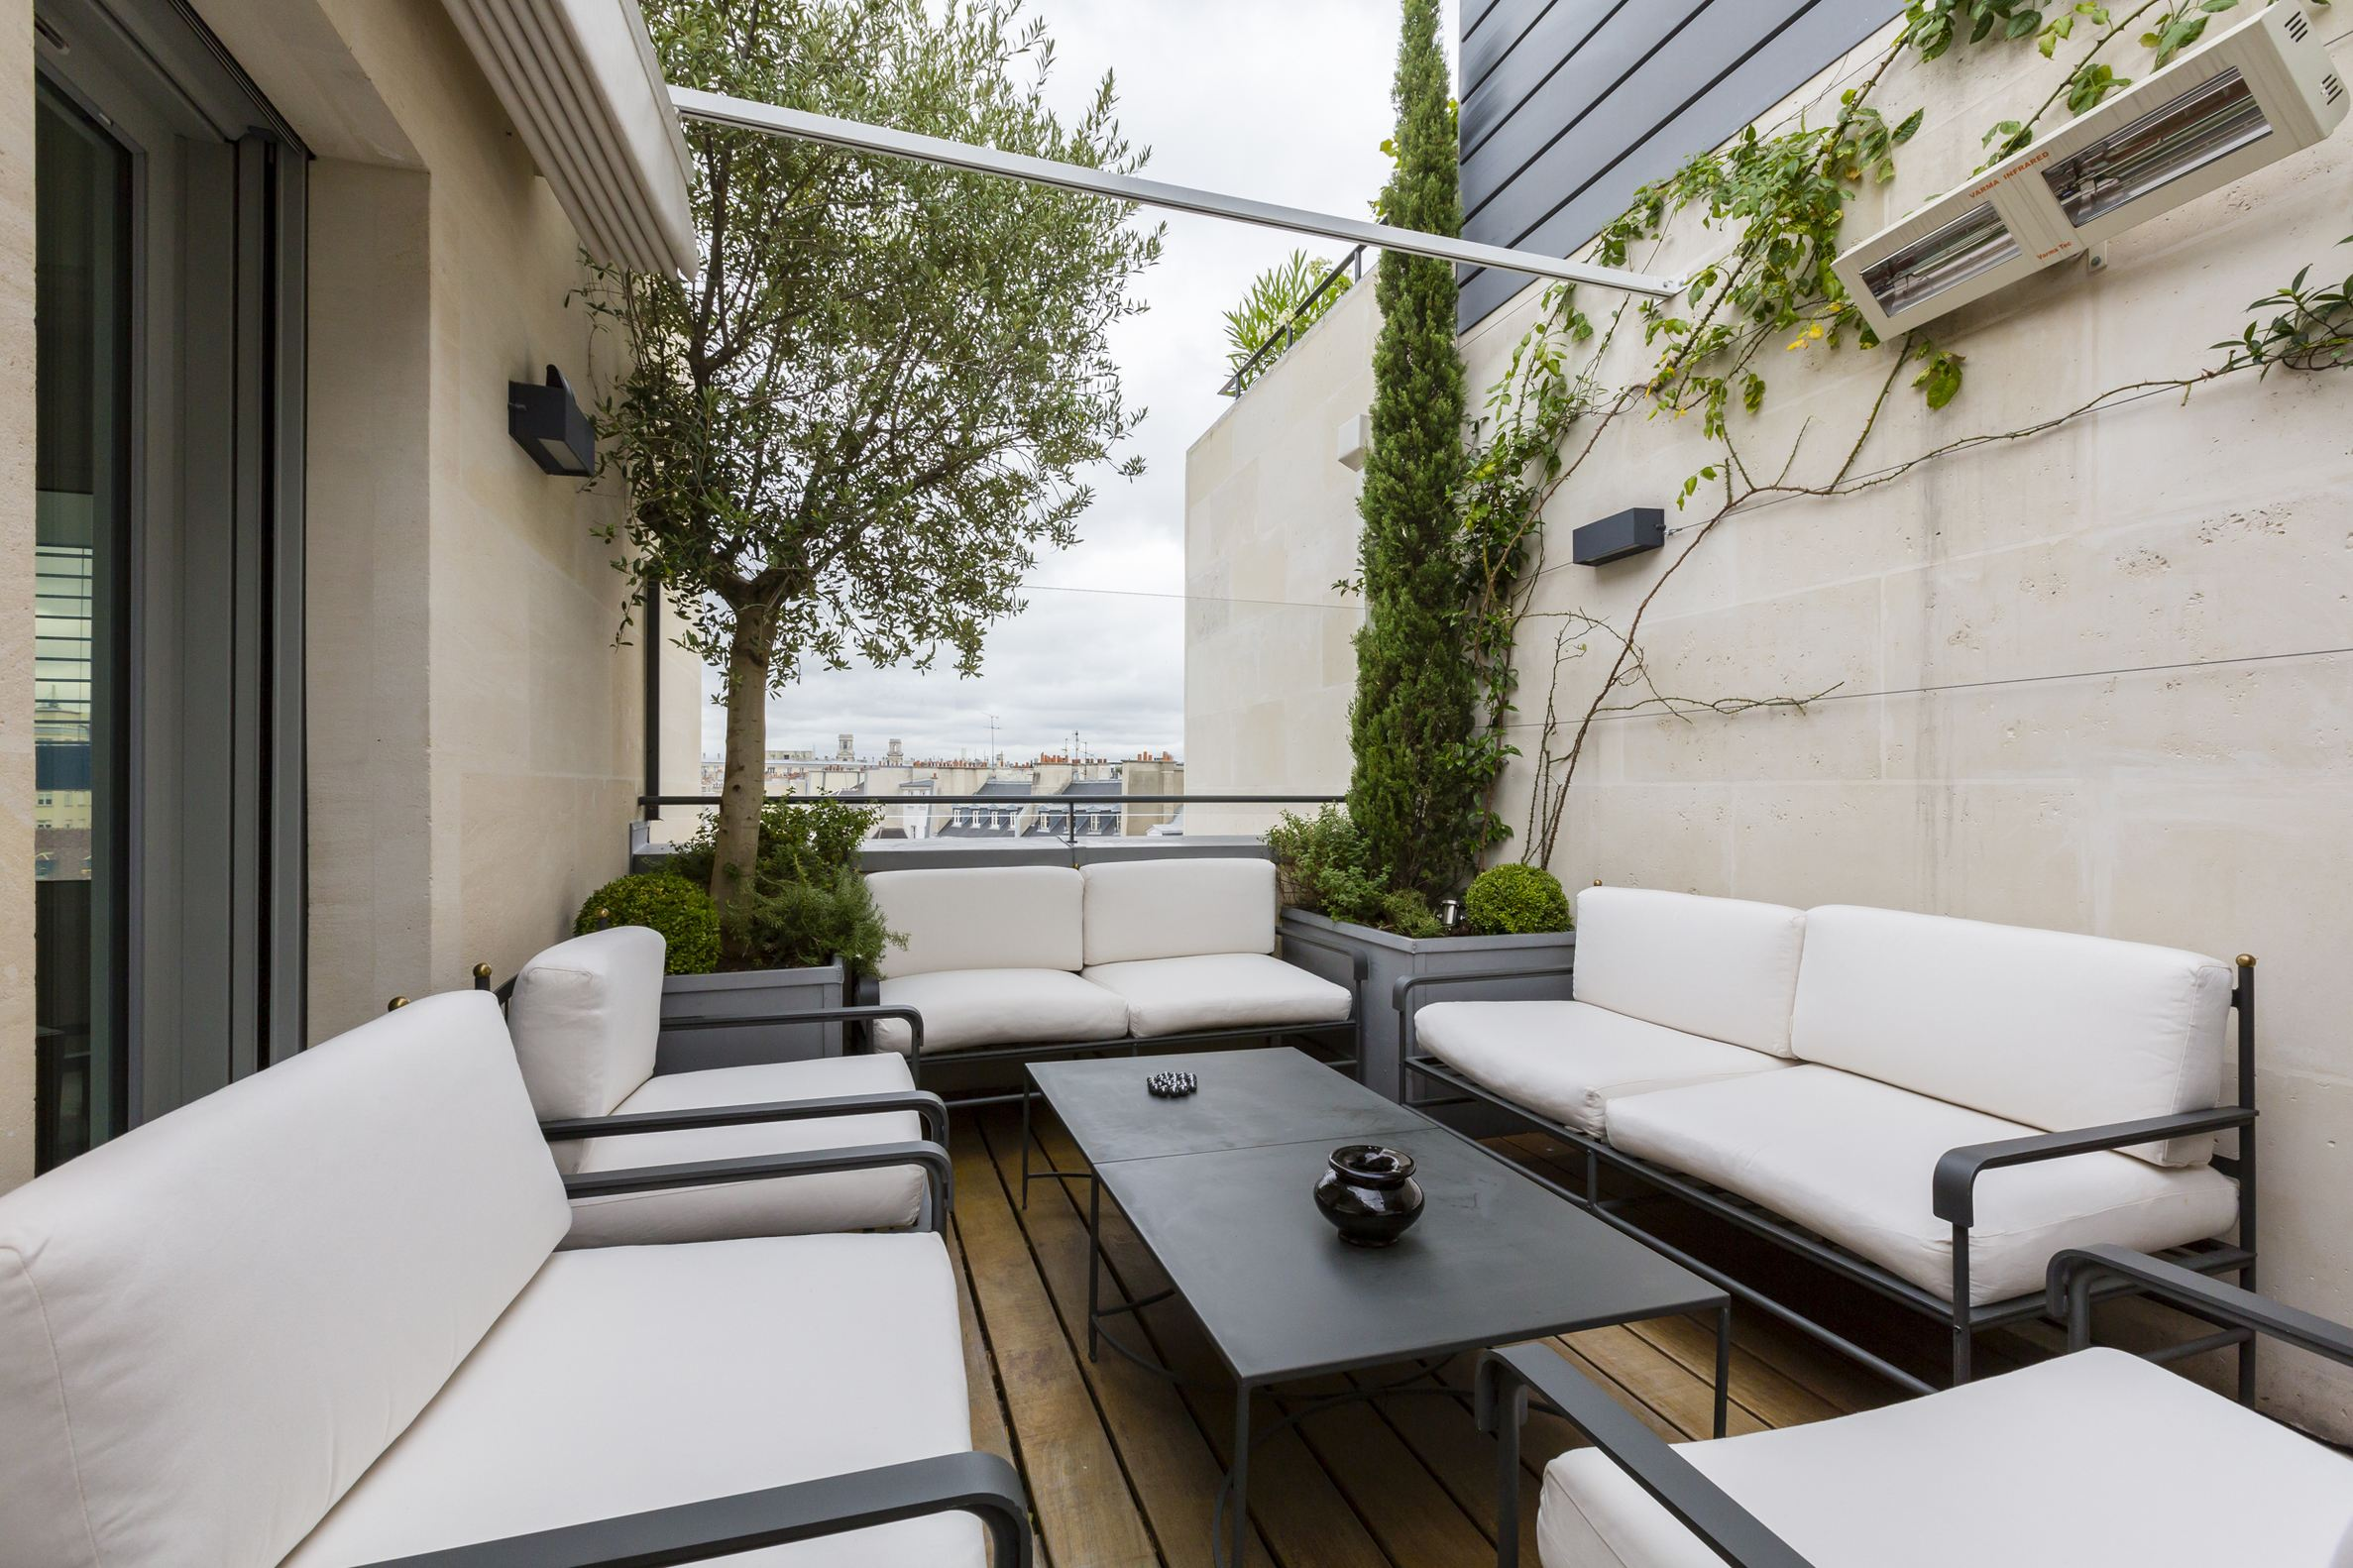 Property For Sale at 75007 - Bon Marché - Duplex apartment with terrace